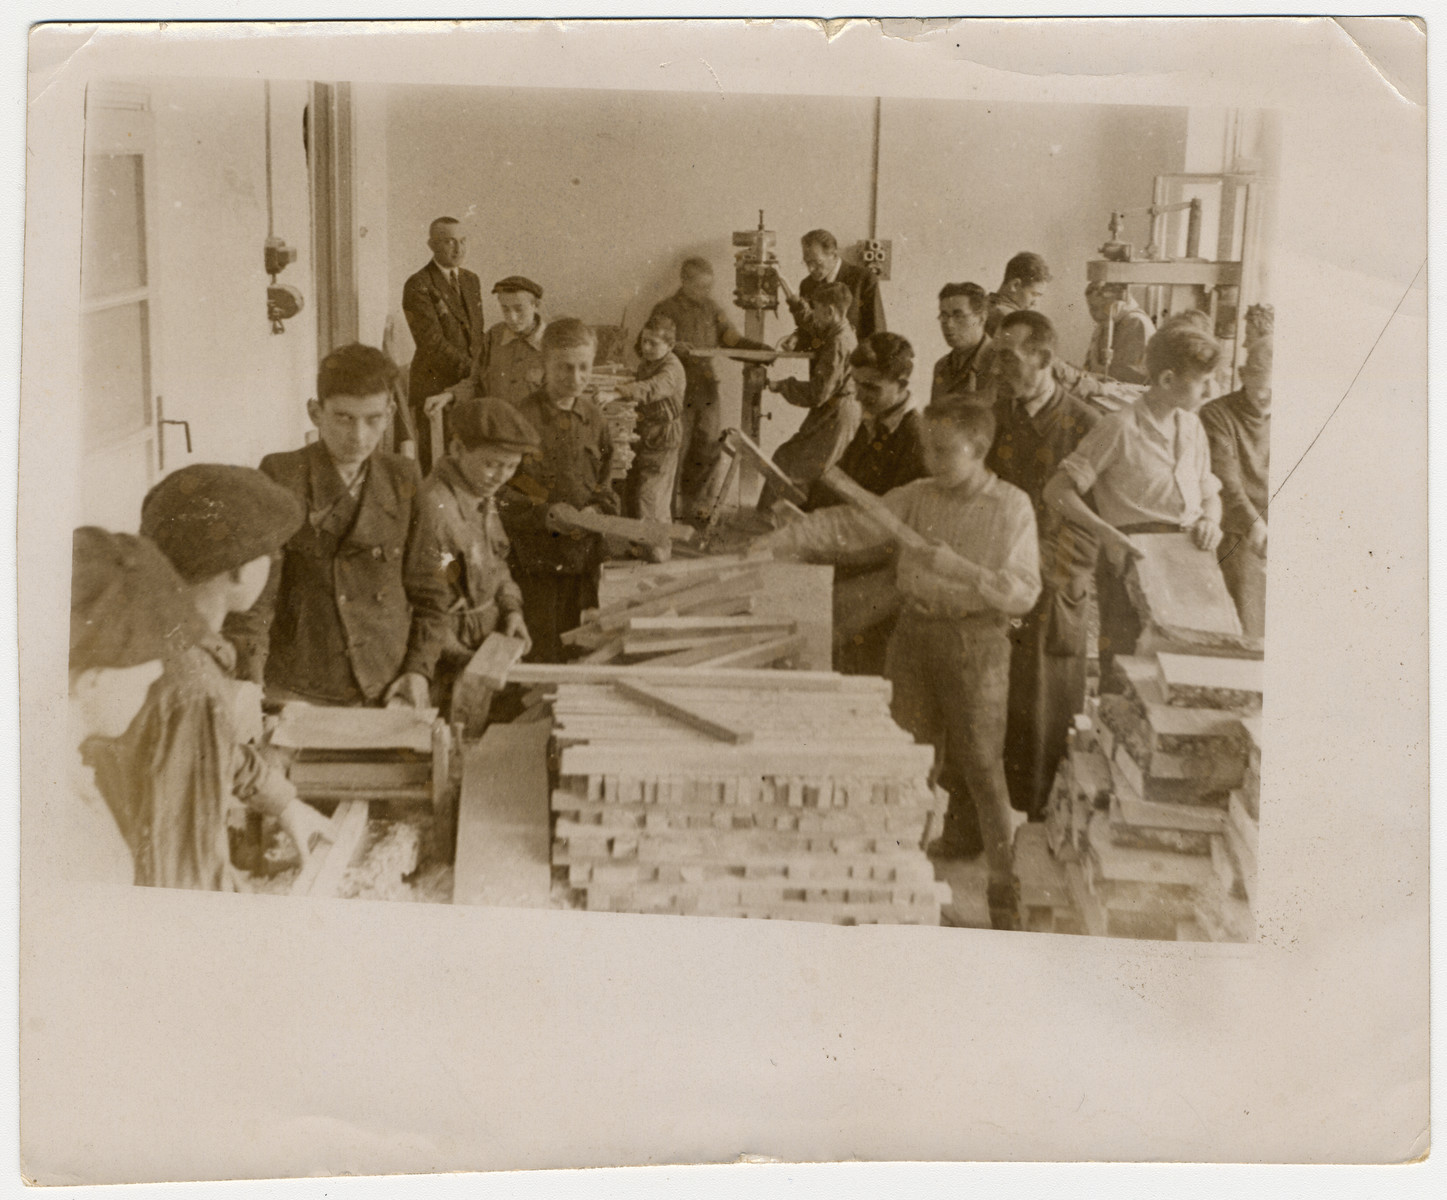 Children working in a wood workshop in the Lodz ghetto.